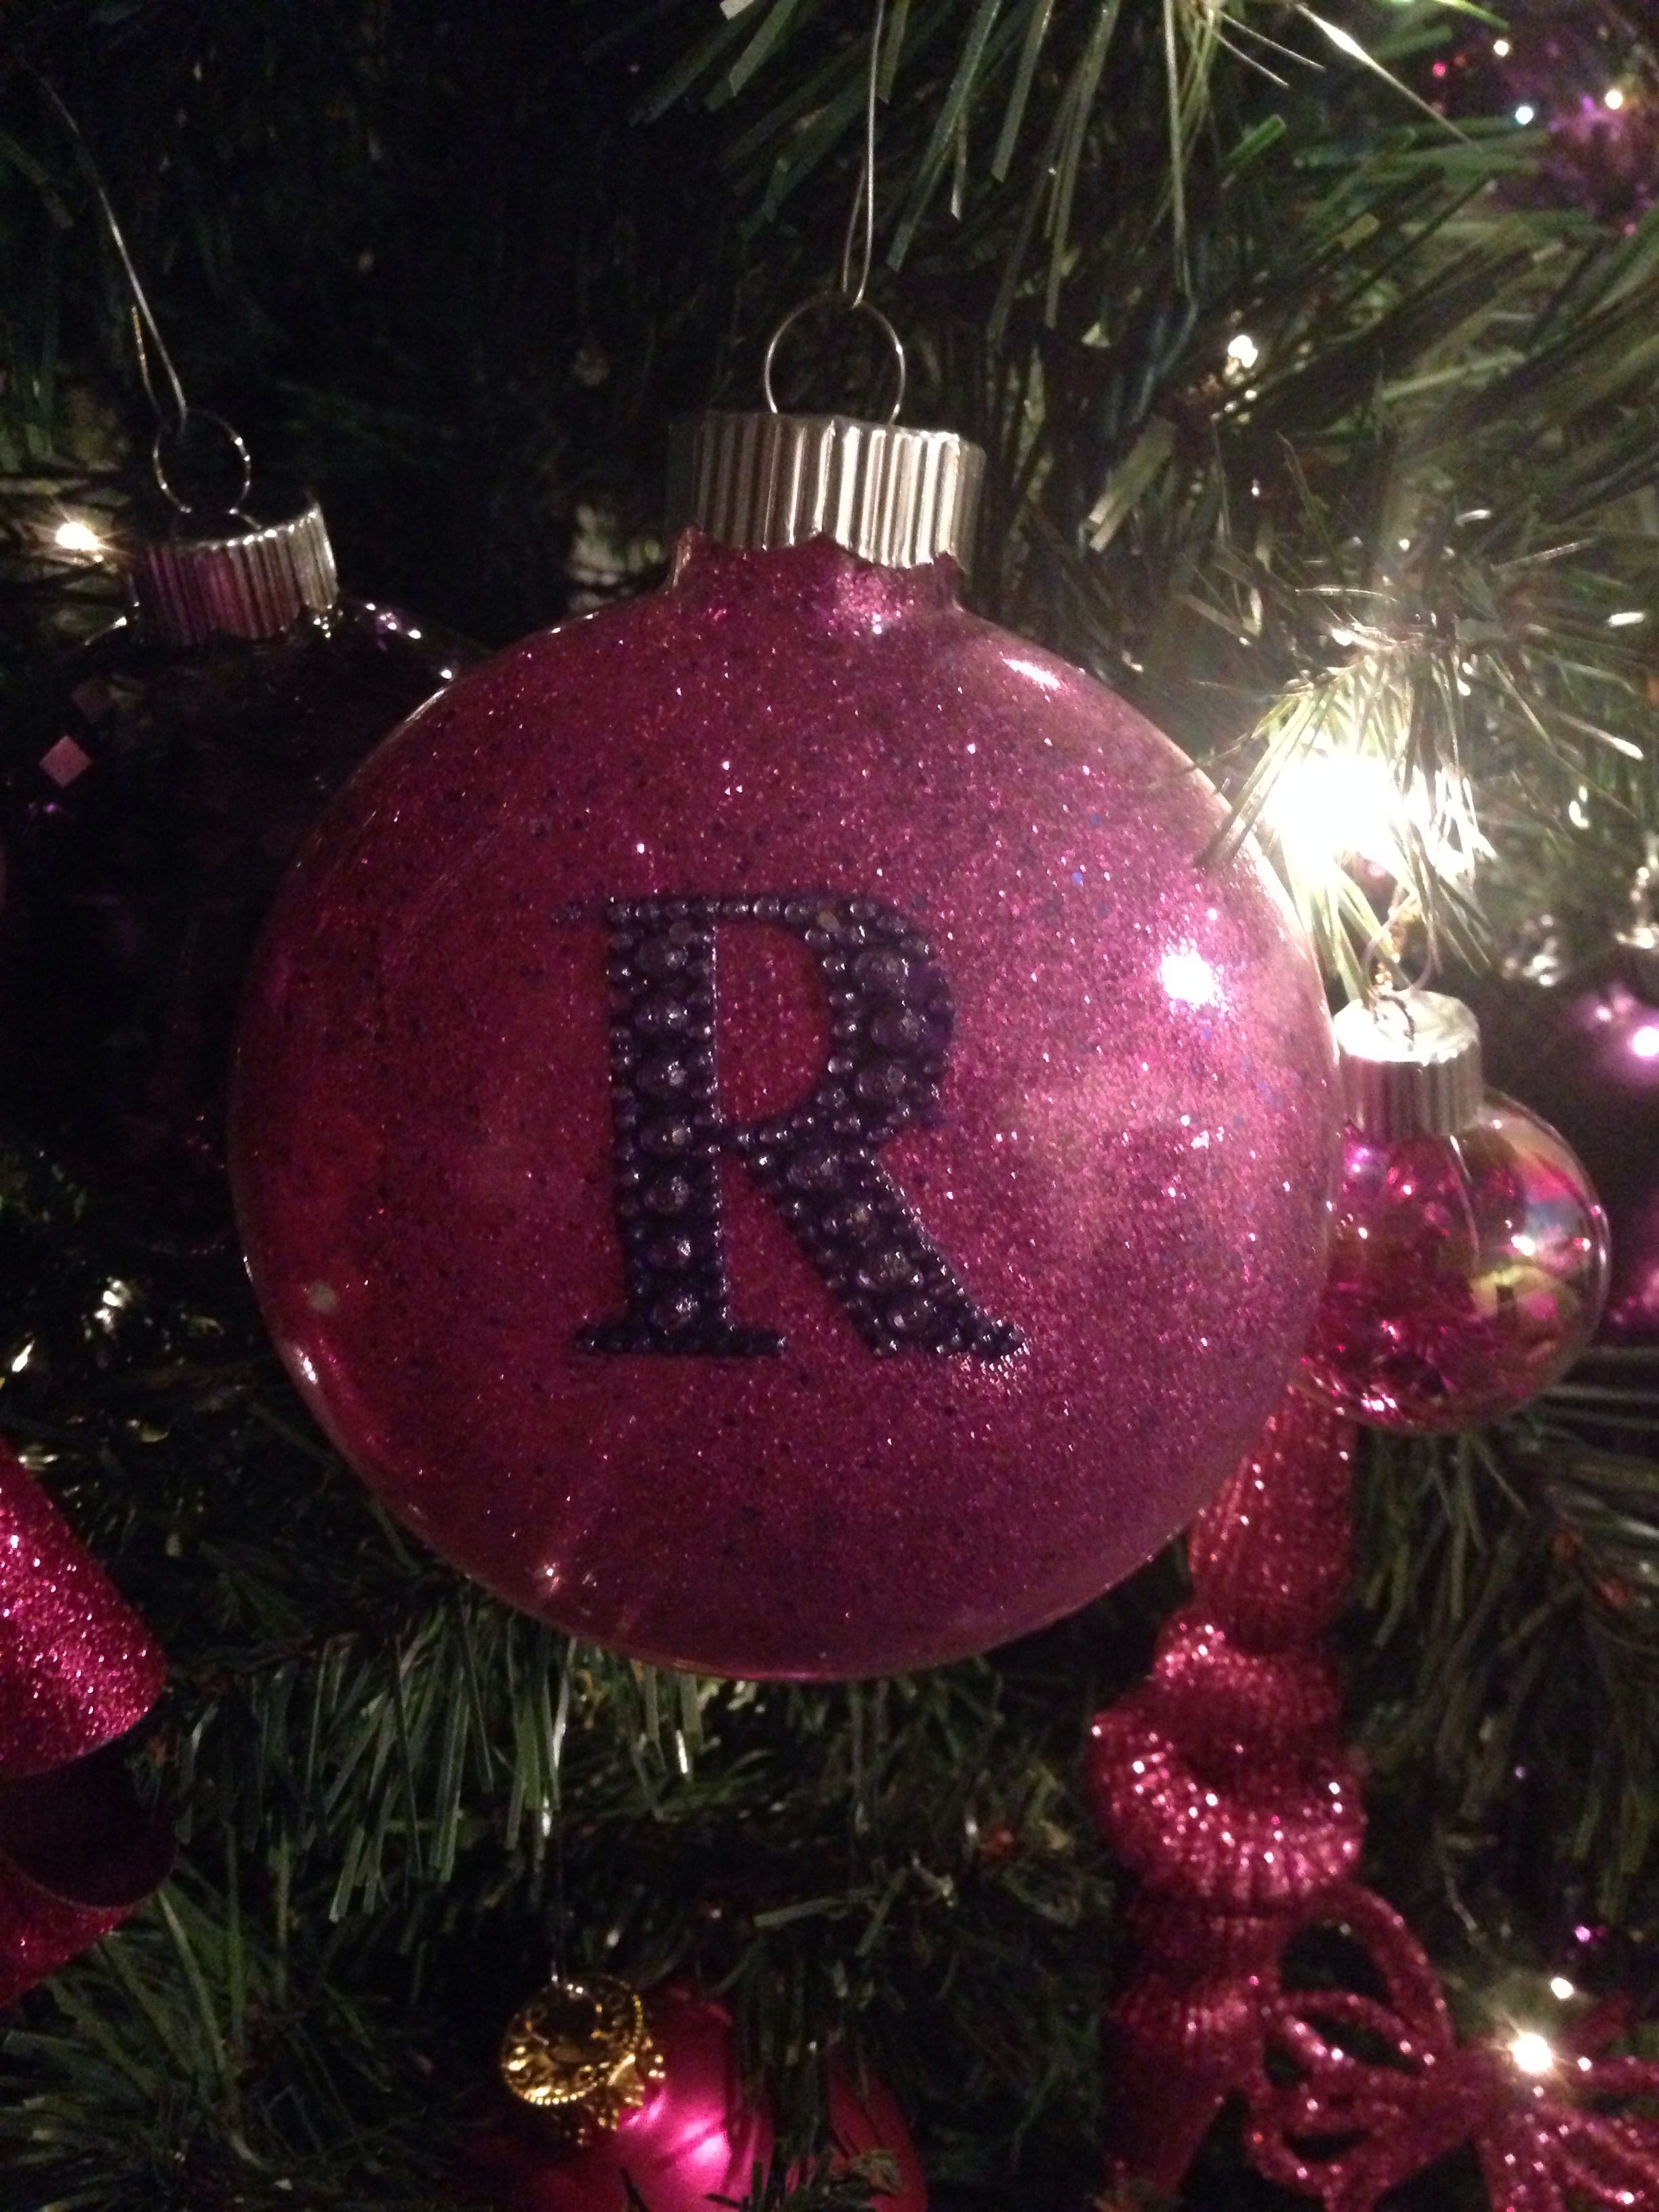 Clear ornament bought at Hobby lobby. Added glitter and